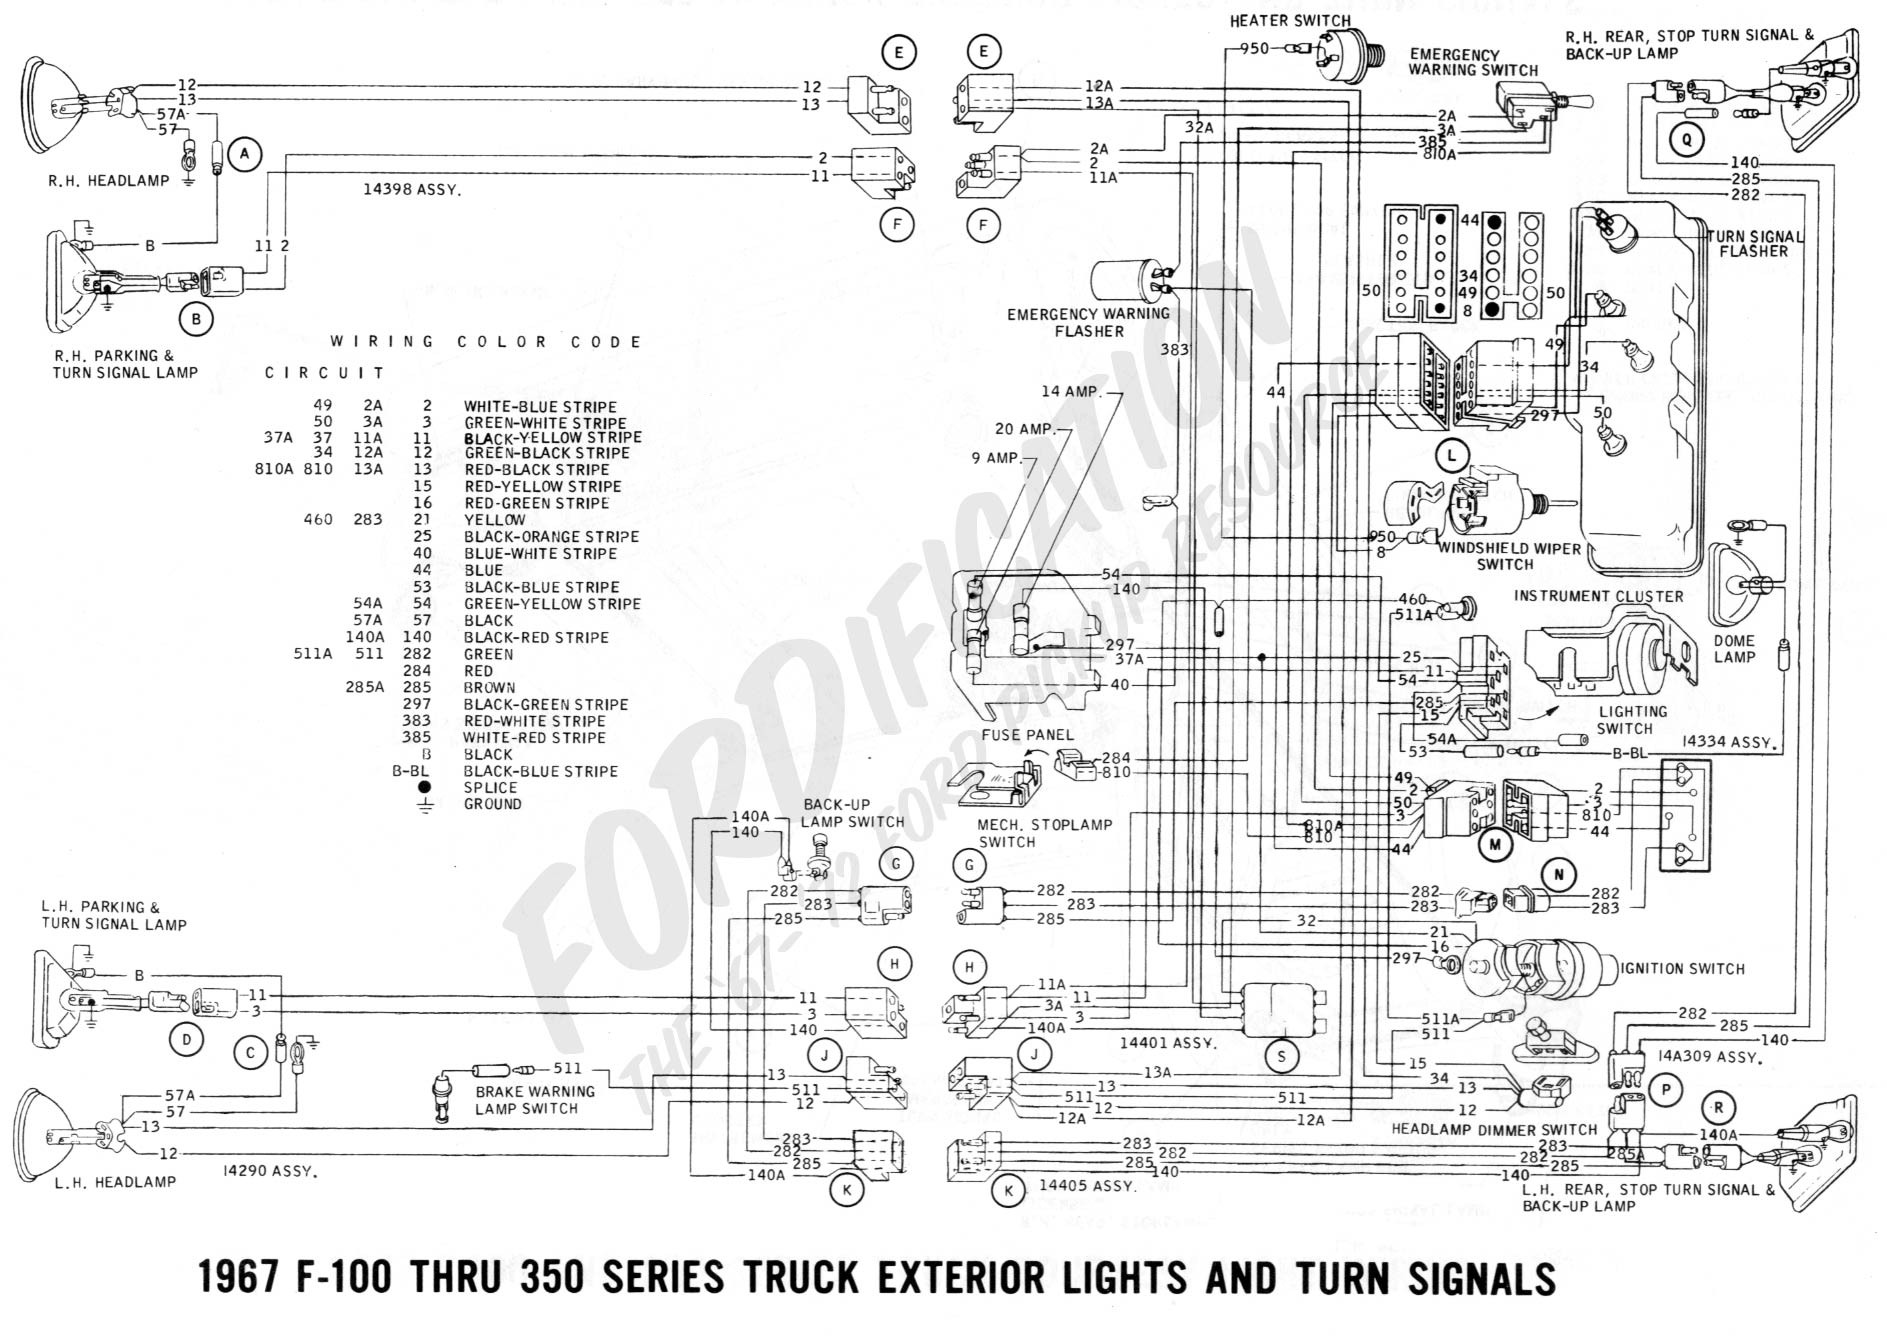 switch wiring diagram on 84 chevy steering column wiring diagram rh lakitiki co 1994 GM Steering Column Diagram Chevy Truck Steering Column Parts